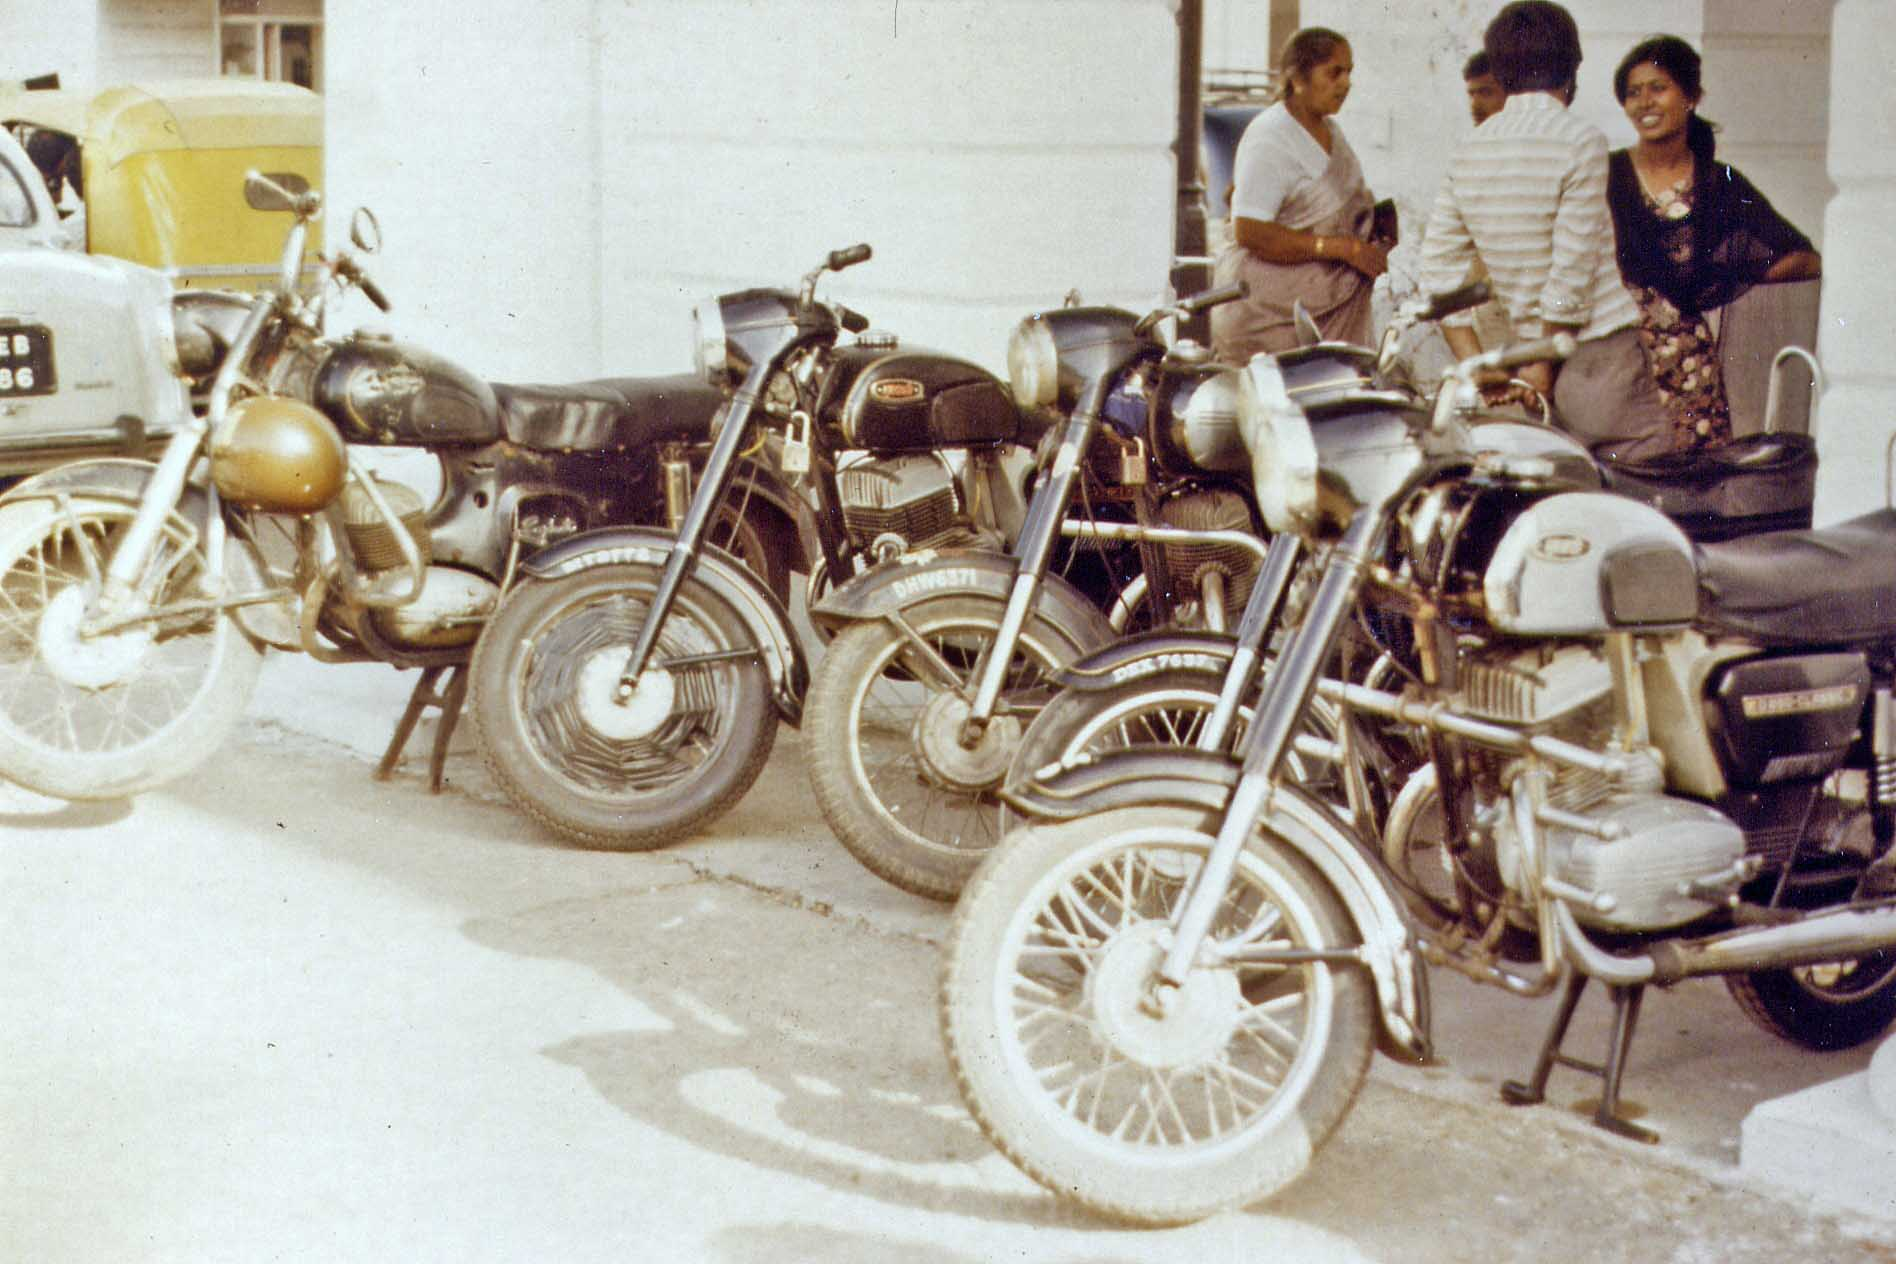 Motor bikes at Connaught Place in New Delhi